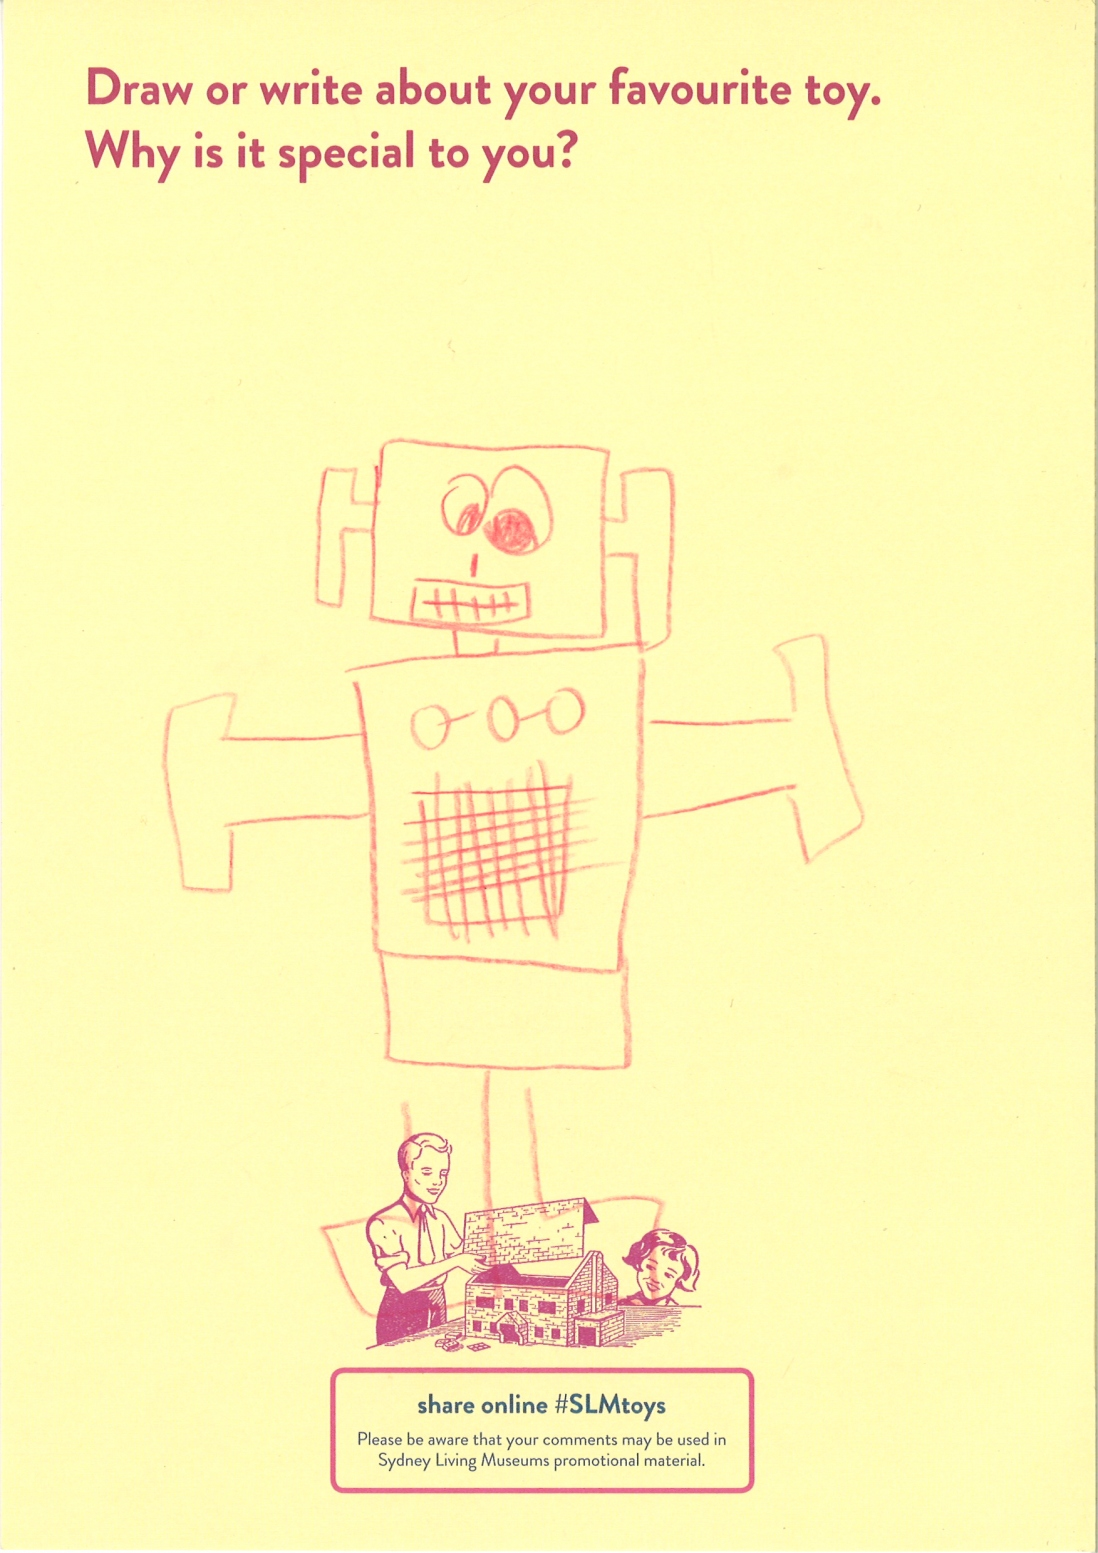 A child's drawing of a red robot with crazy eyes